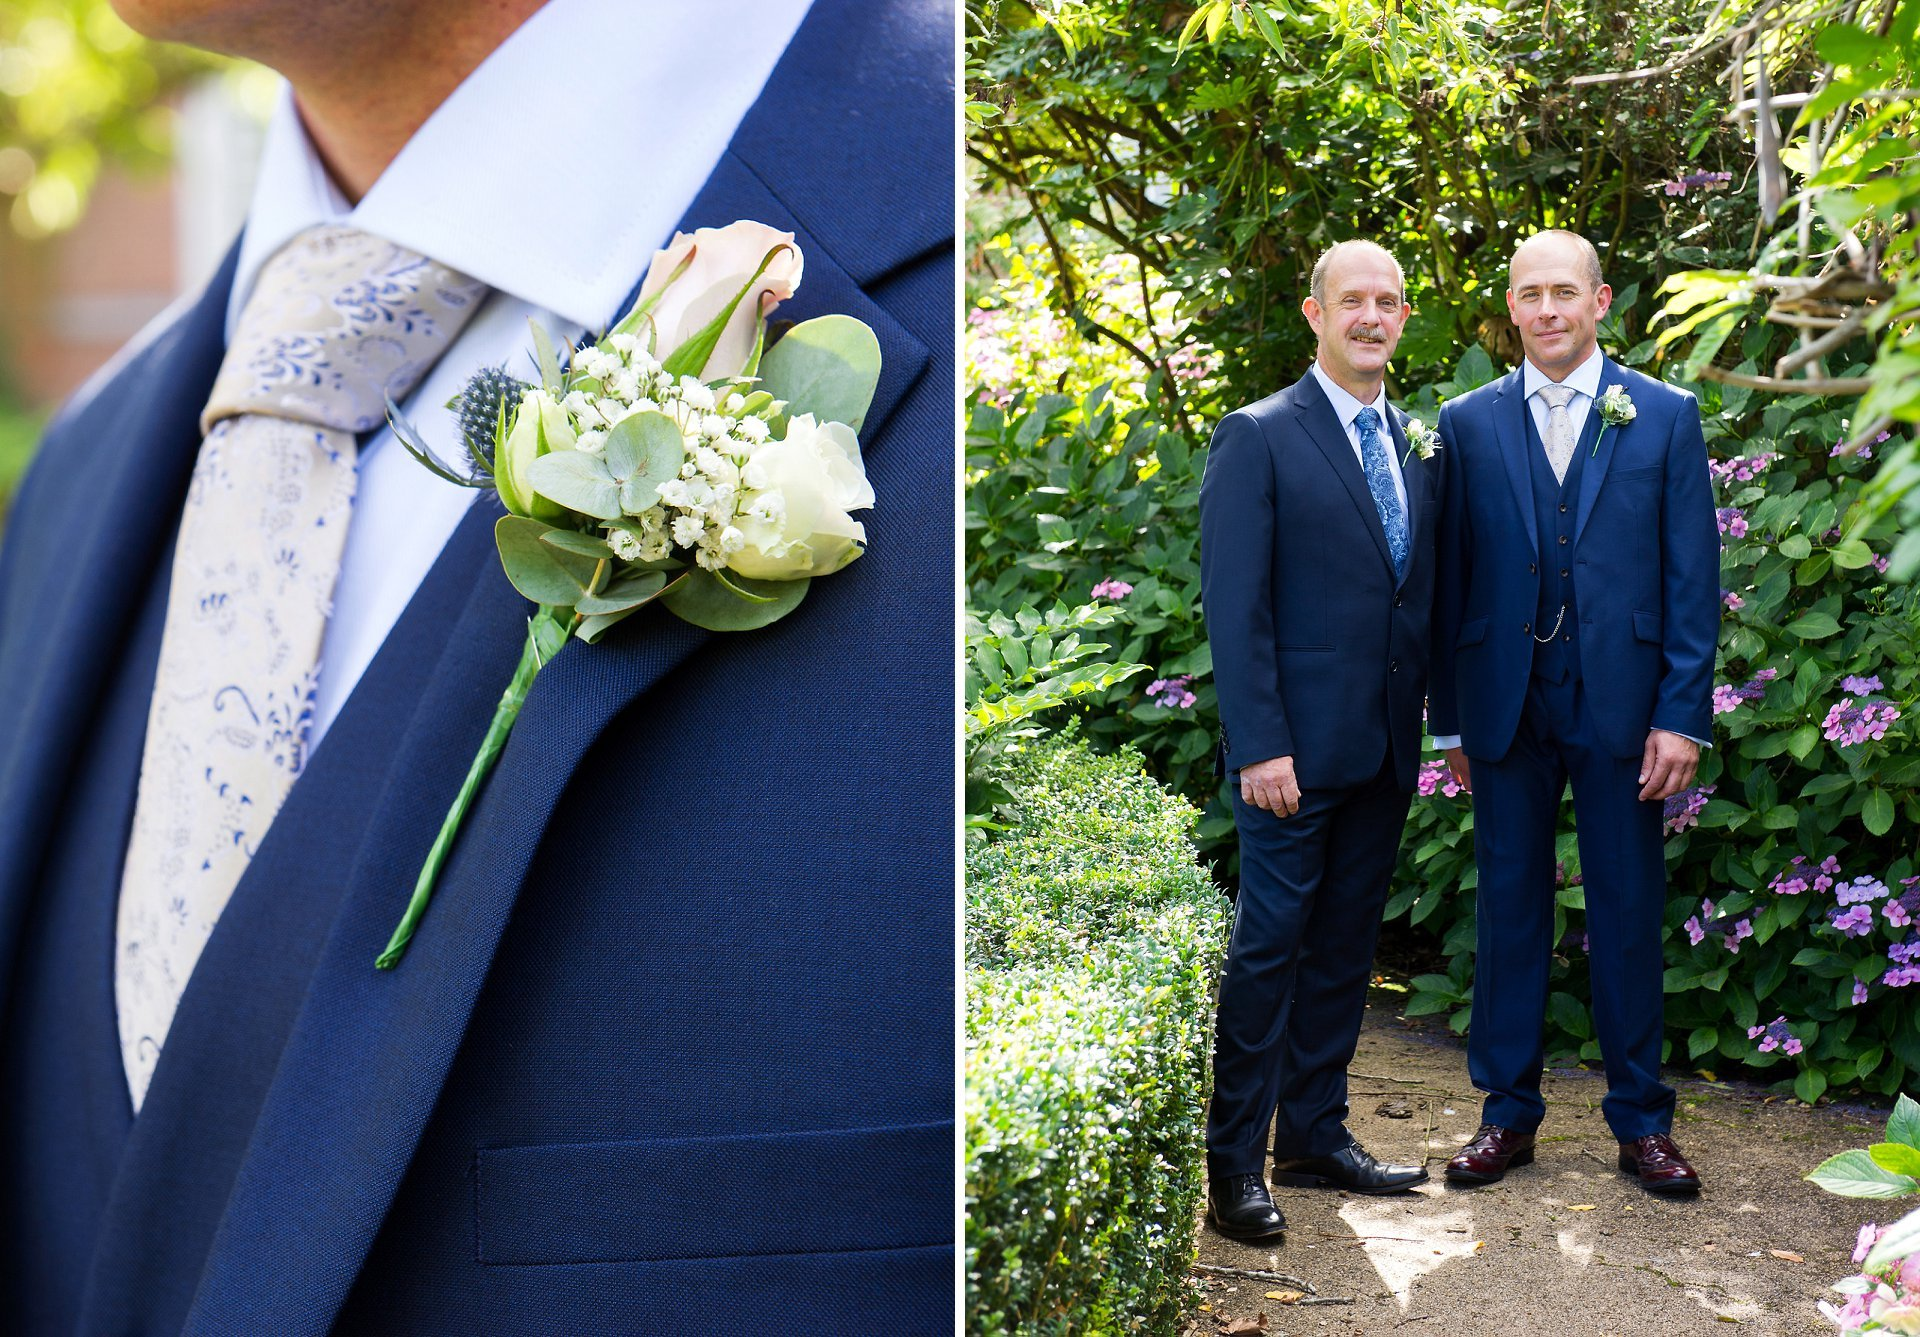 Park House Horsham wedding photographer Emma Duggan photographing the groom and his best man just before their Horsham Registry Office wedding. The gardens are a very pretty backdrop for wedding photographs